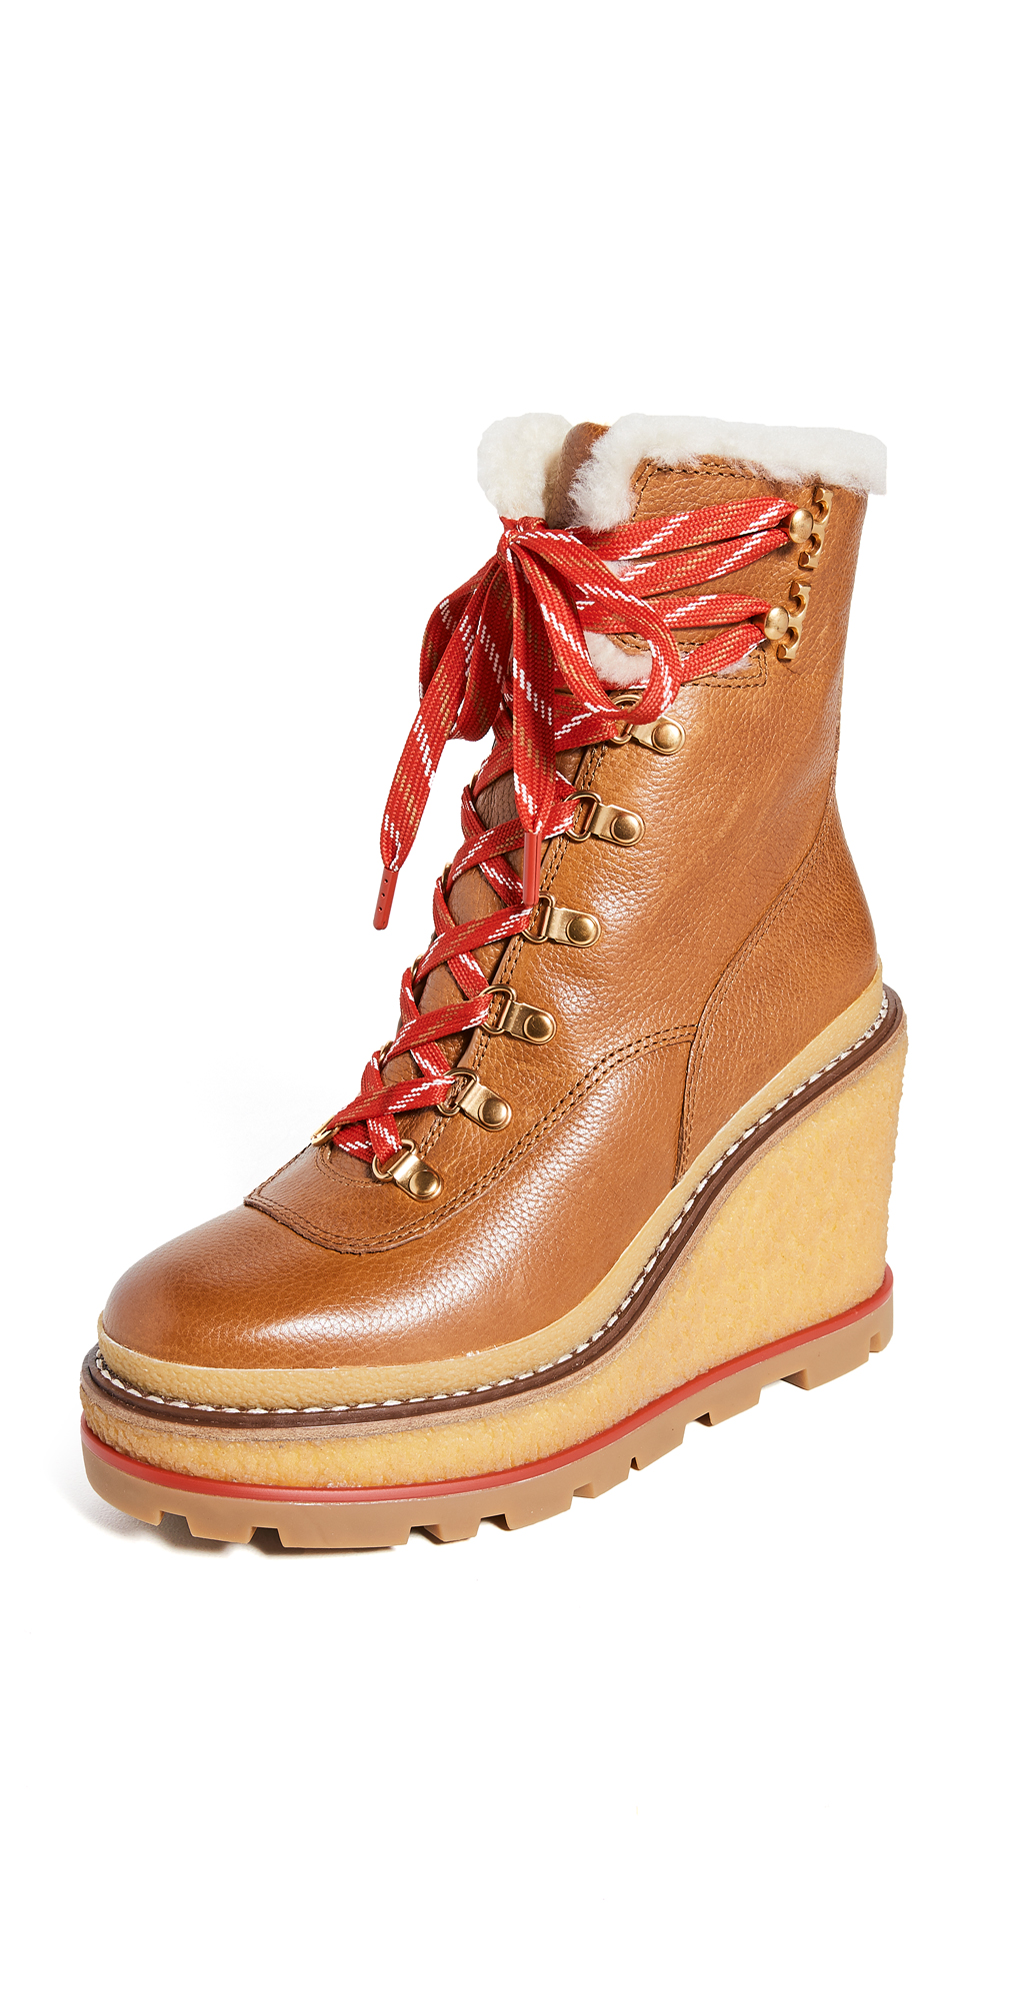 Tory Burch Hiker Wedge 95mm Shearling Booties